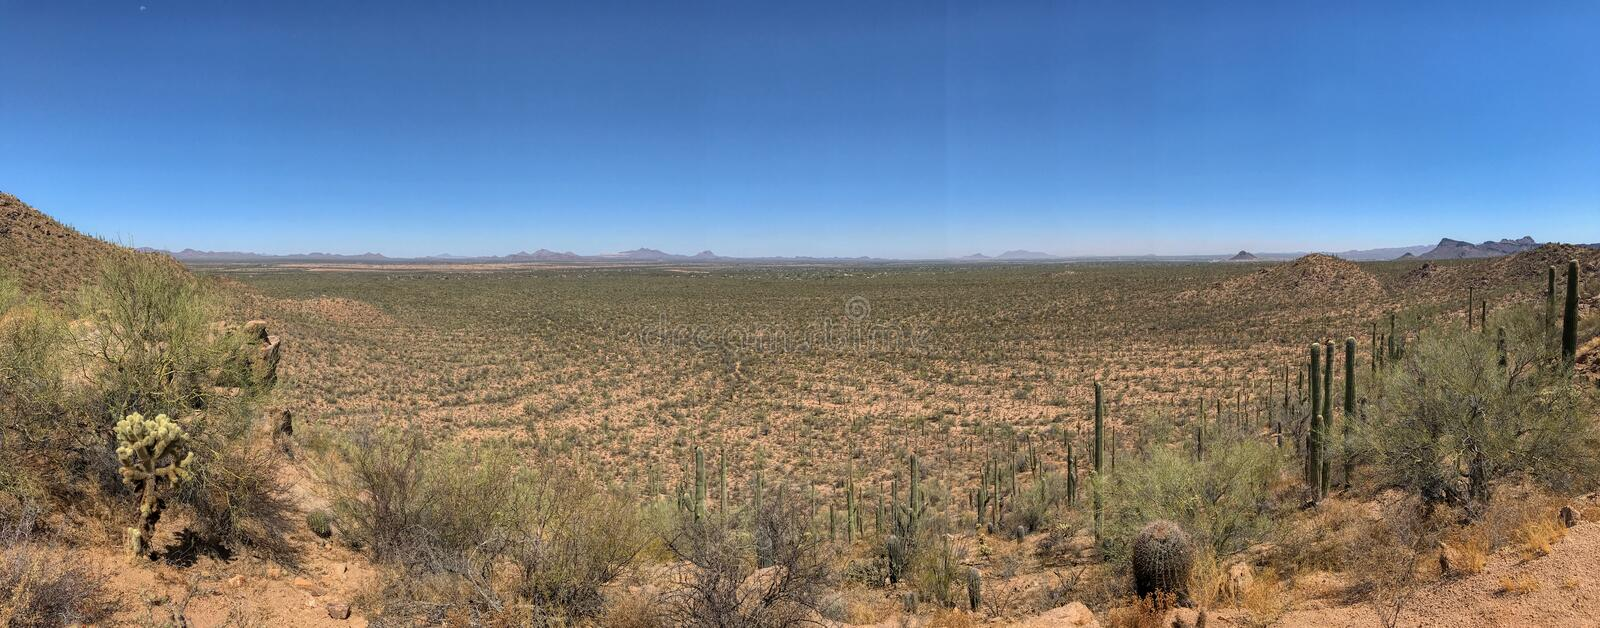 Avra Valley panorama from Saguaro National Park stock images